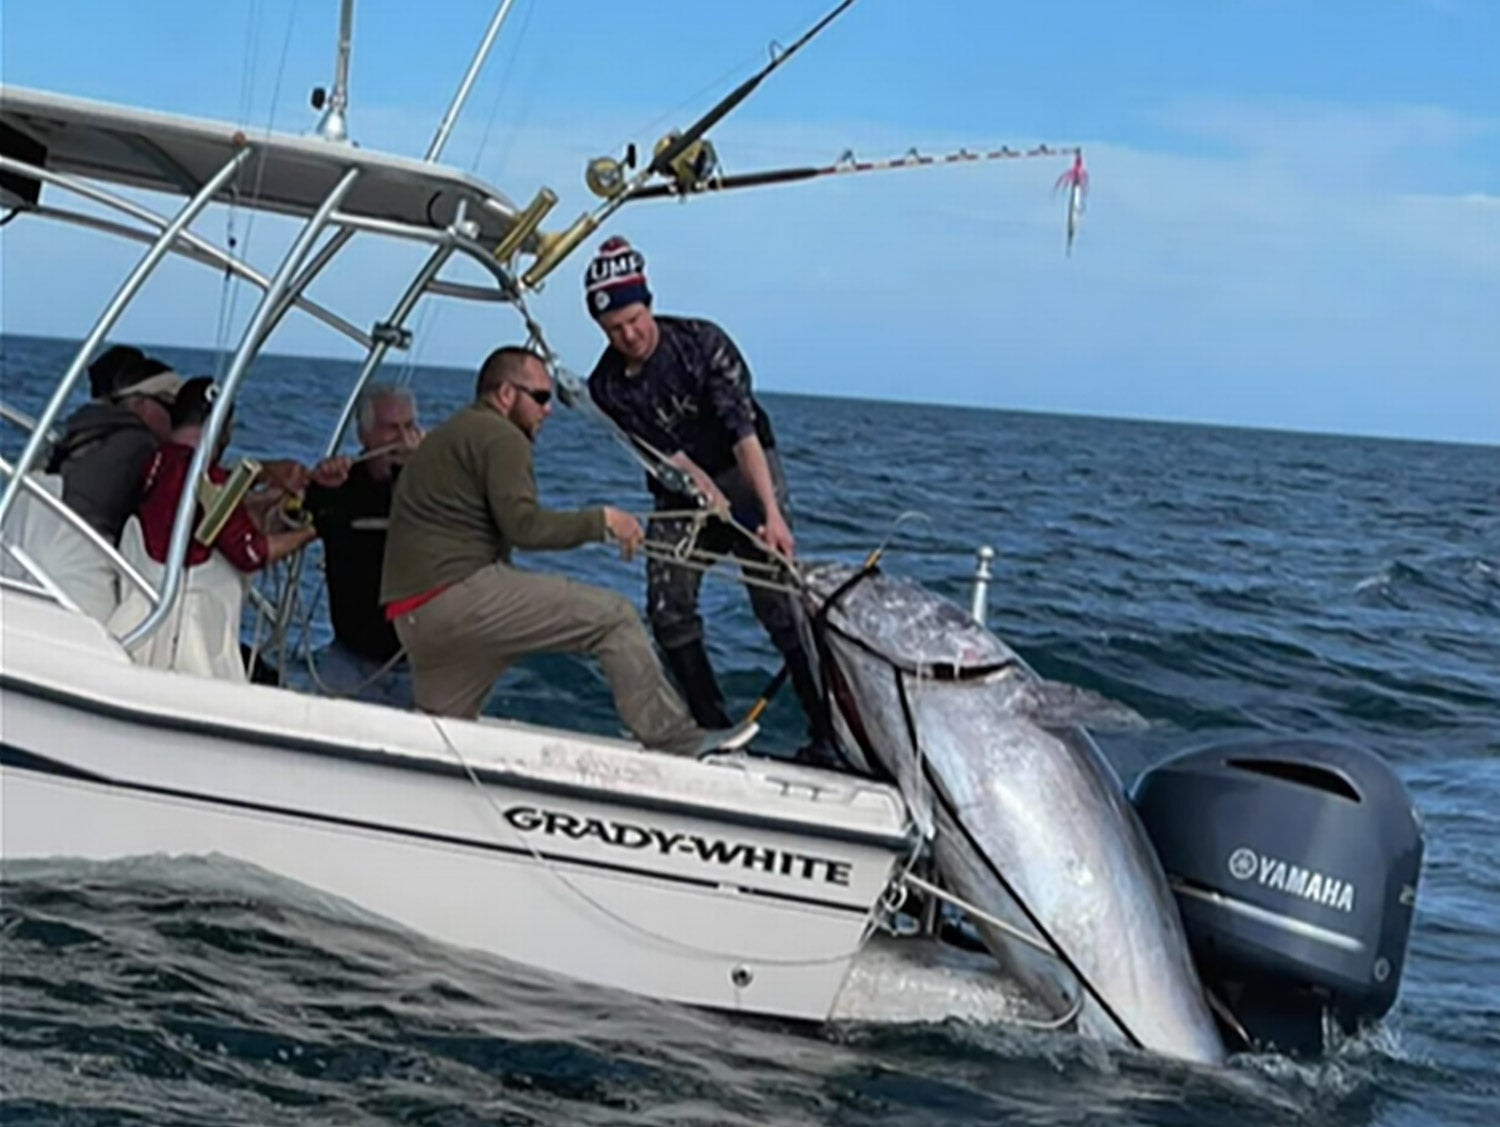 A fishing team pulls a large bluefin tuna on board.